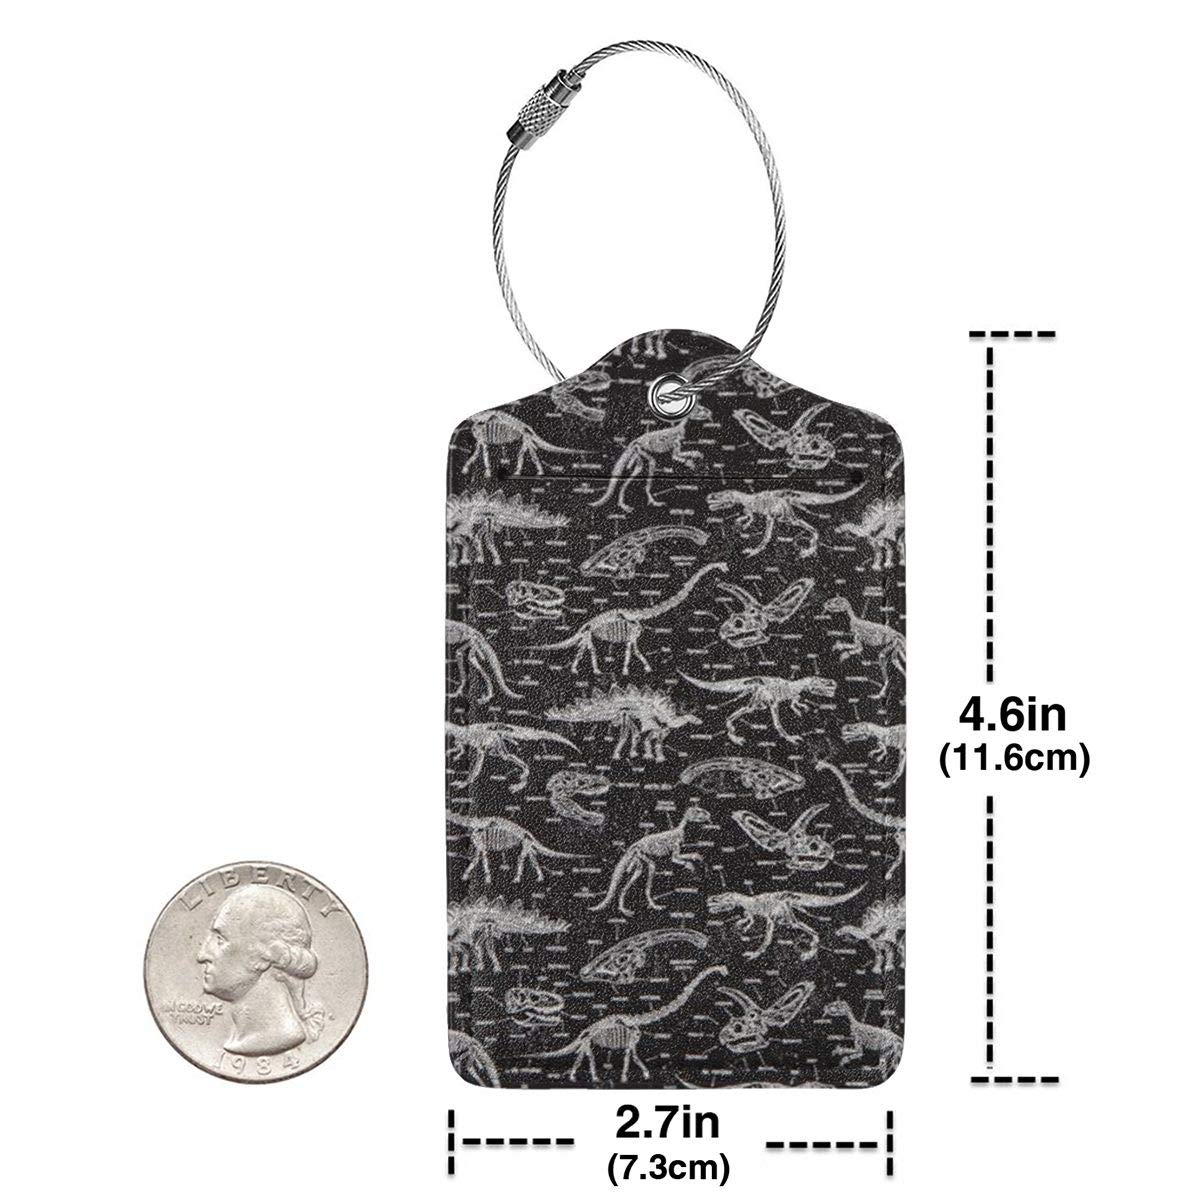 GoldK Fossil Tyrannosaurus Leather Luggage Tags Baggage Bag Instrument Tag Travel Labels Accessories with Privacy Cover